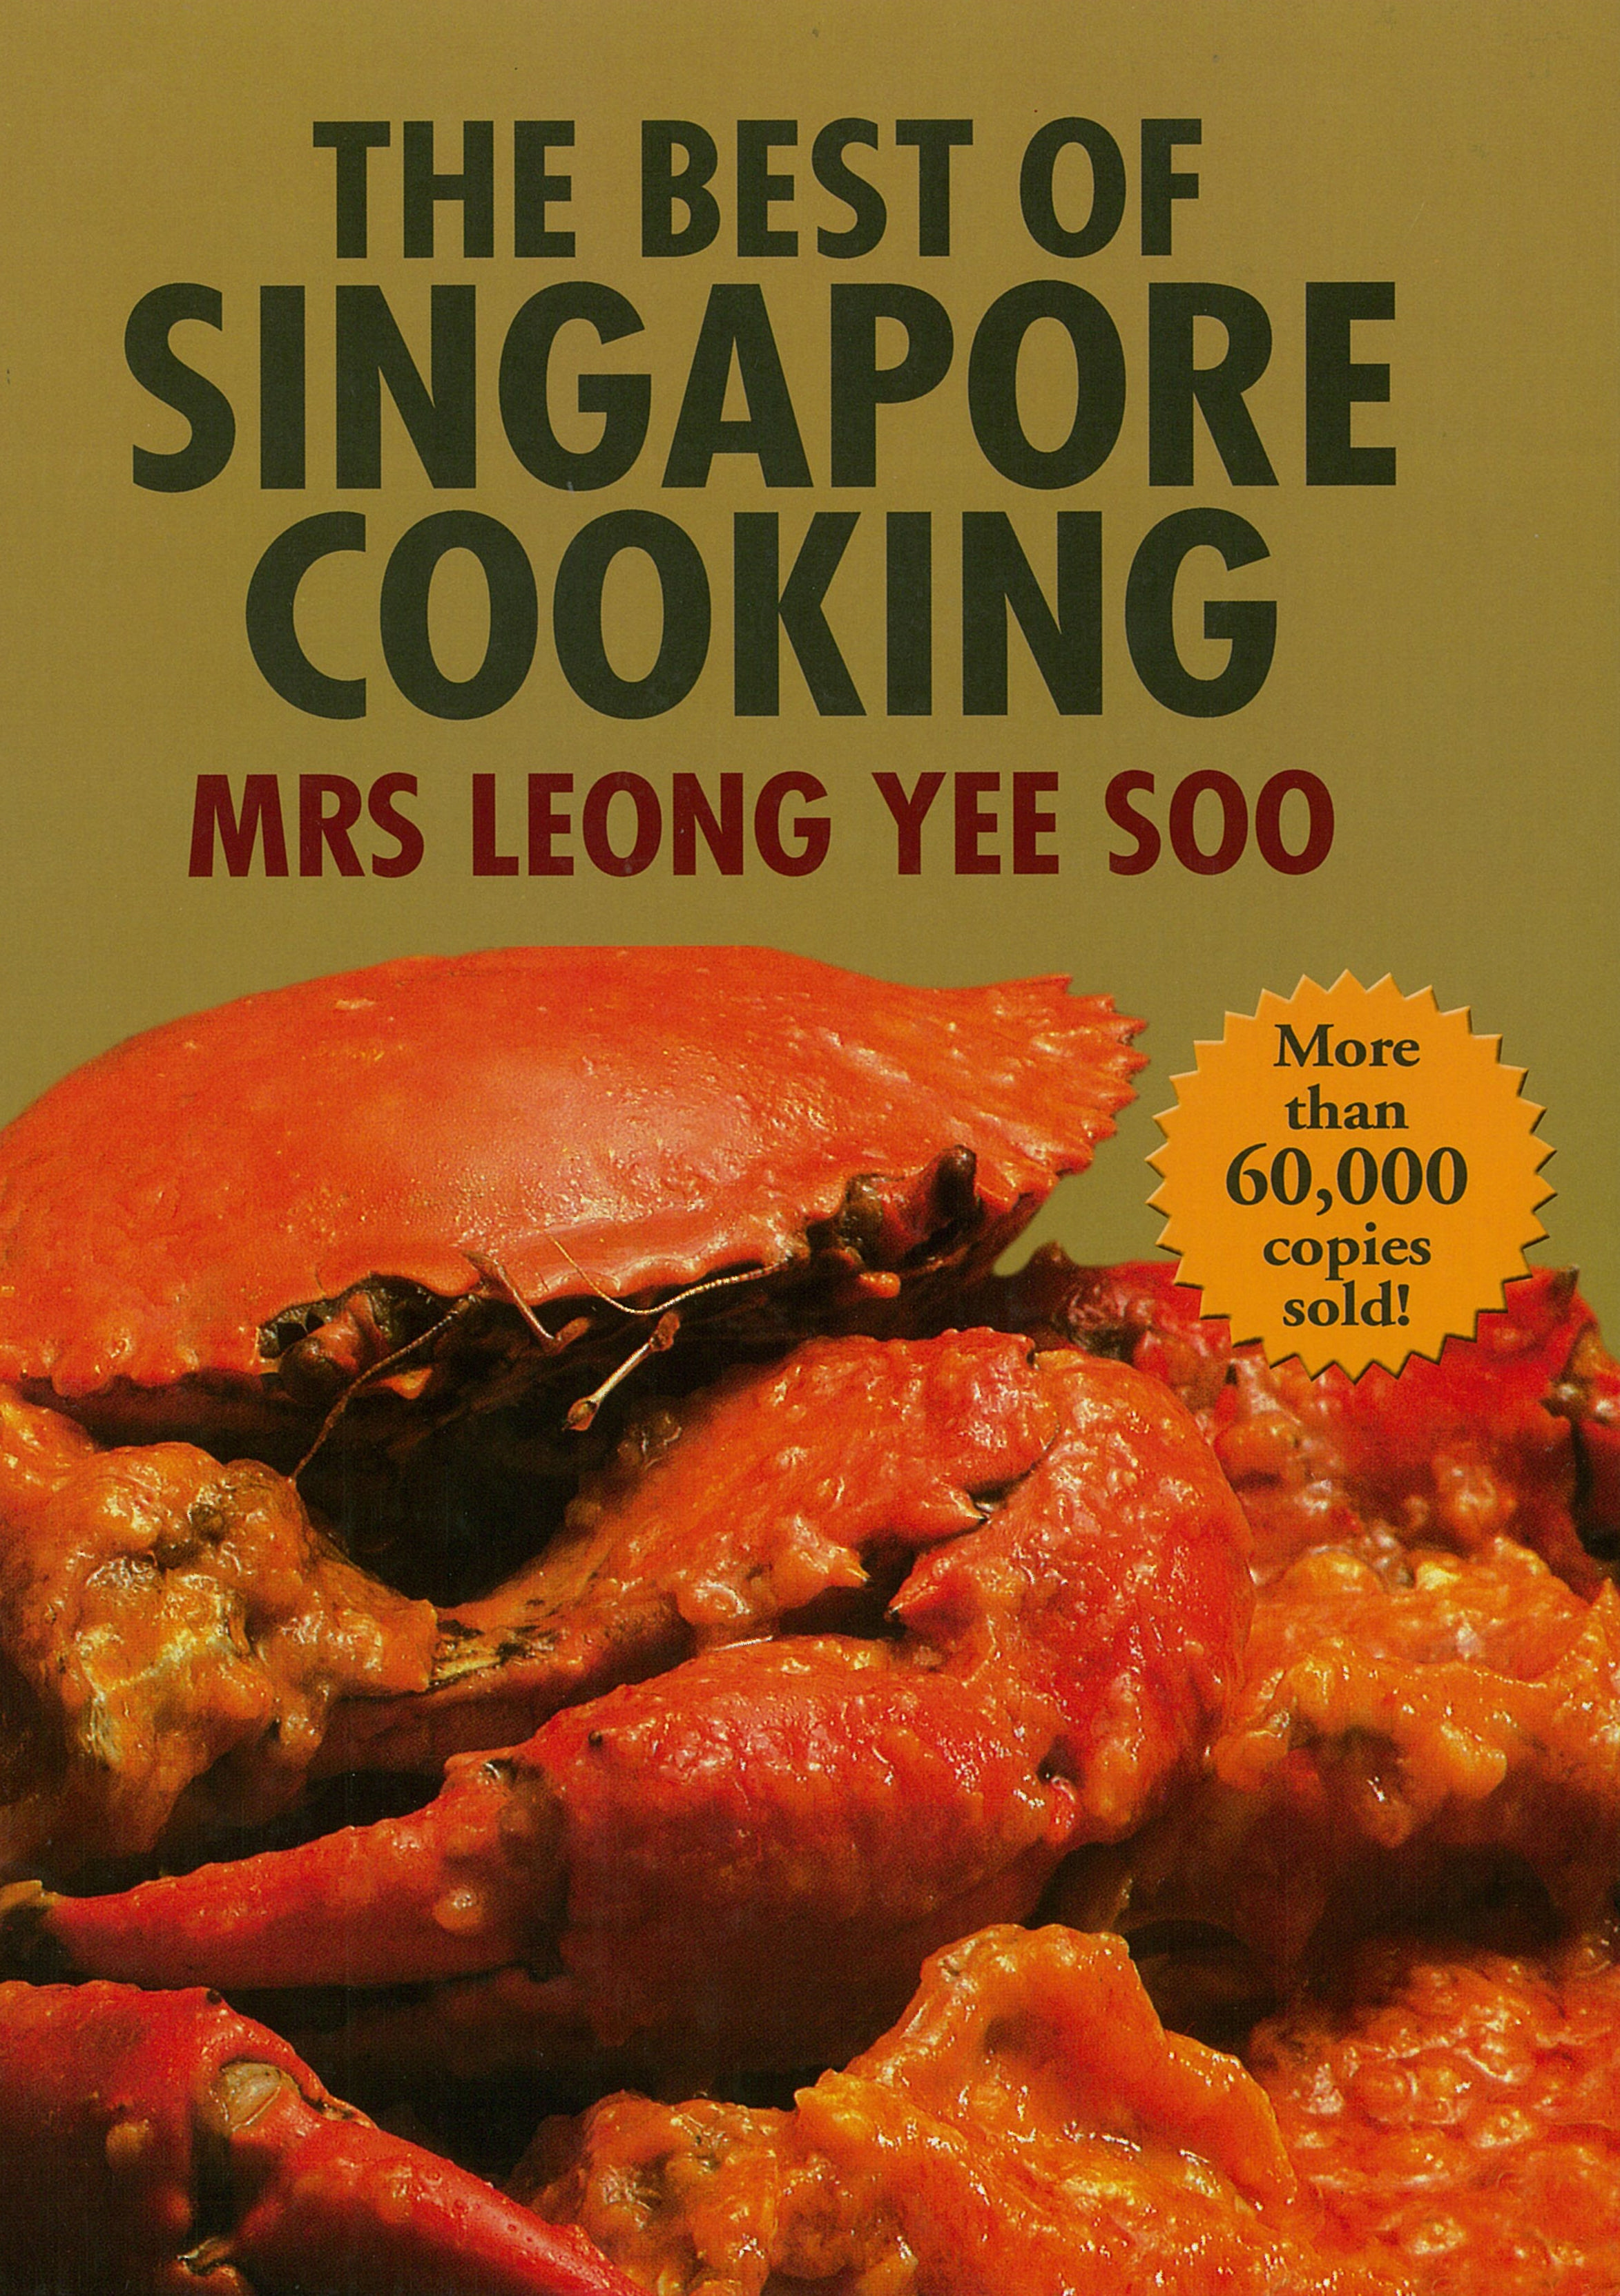 The Best of Singapore Cooking by Leong Yee Soo, ISBN: 9789814561662